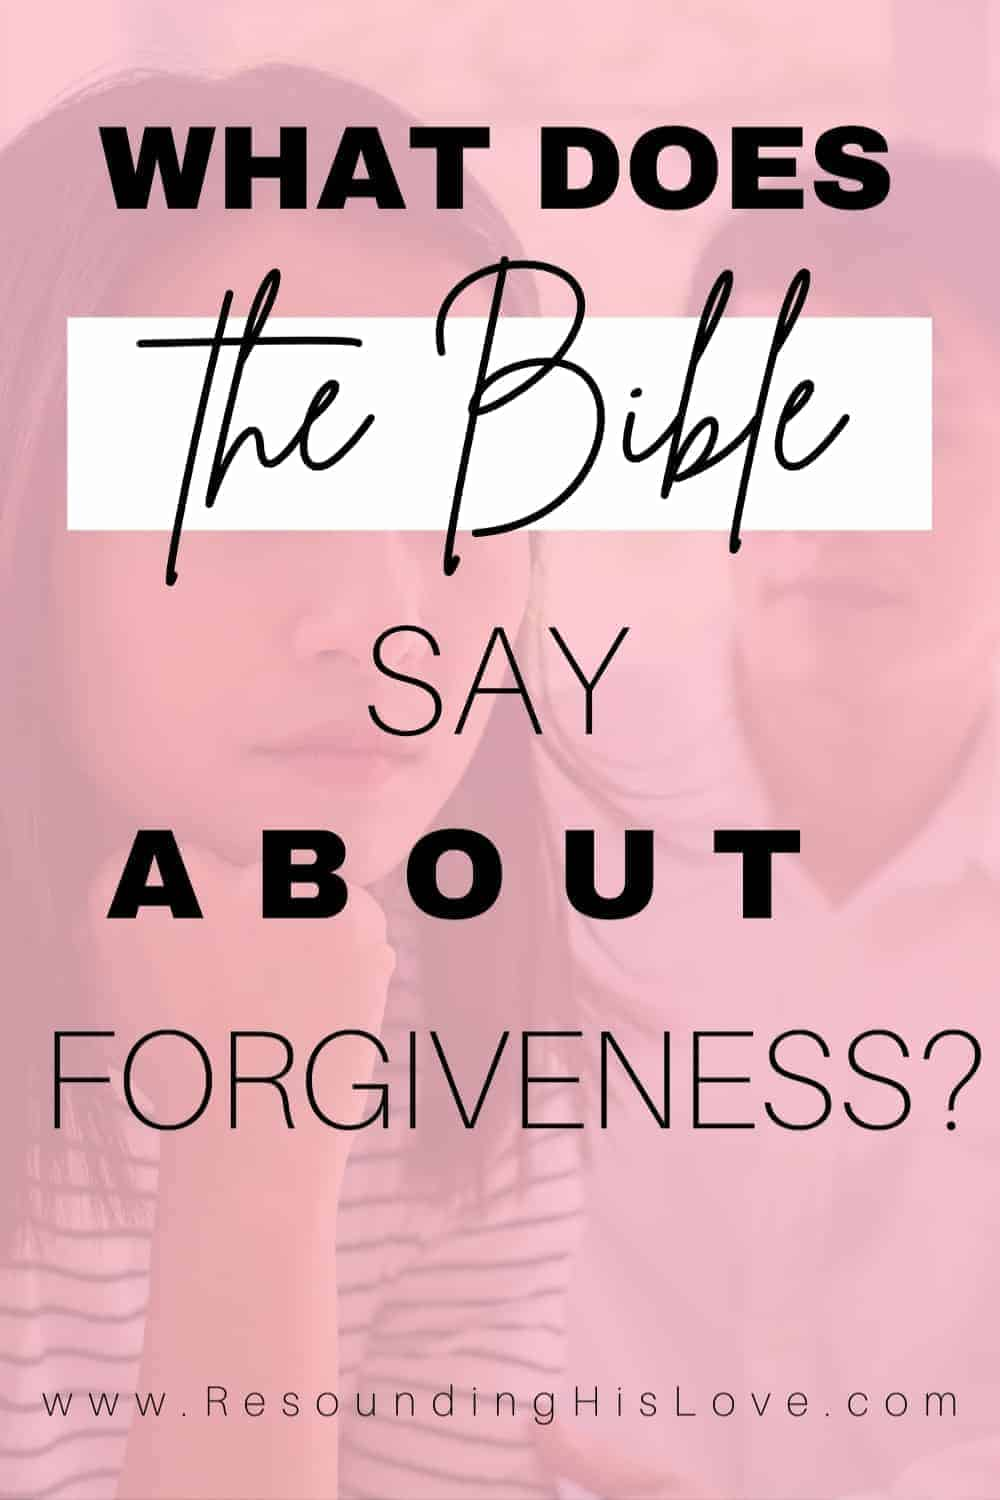 What does the Bible say about forgiveness? Power in Forgiveness